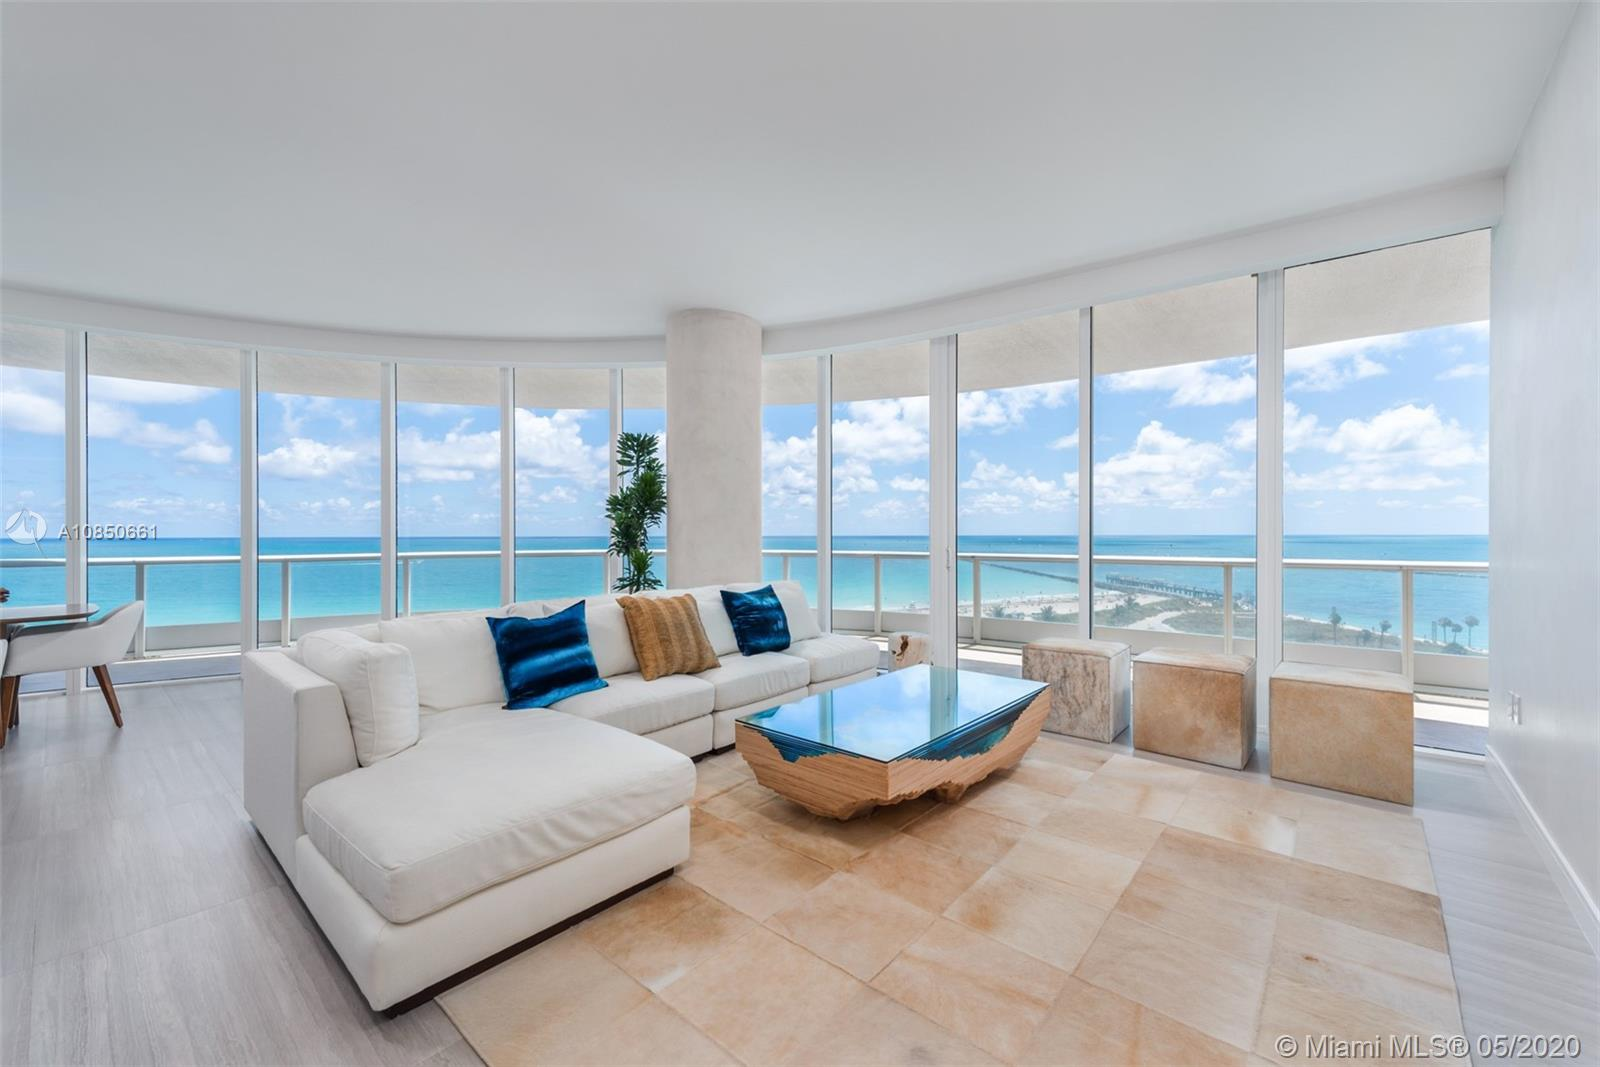 100 Pointe dr-1006 miami-beach-fl-33139-a10850661-Pic01